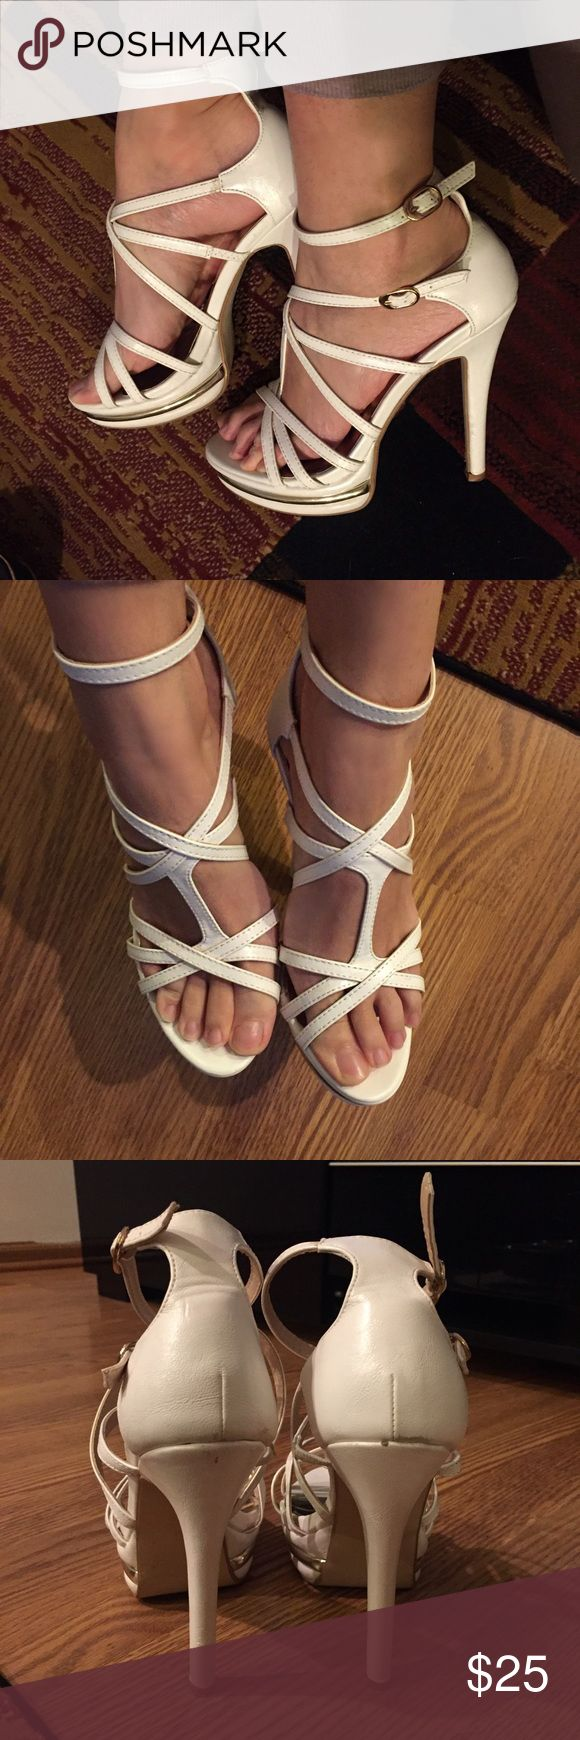 Fair Lady White Strappy Platform Sandals Heels These have been worn once to a wedding and have marks just on the back of the top of the heels * Very good condition heels * 5 inch heels with 1.5 inch platforms * EU size 38 and they fit me as I am a 7.5 US * Fair Lady Shoes Heels